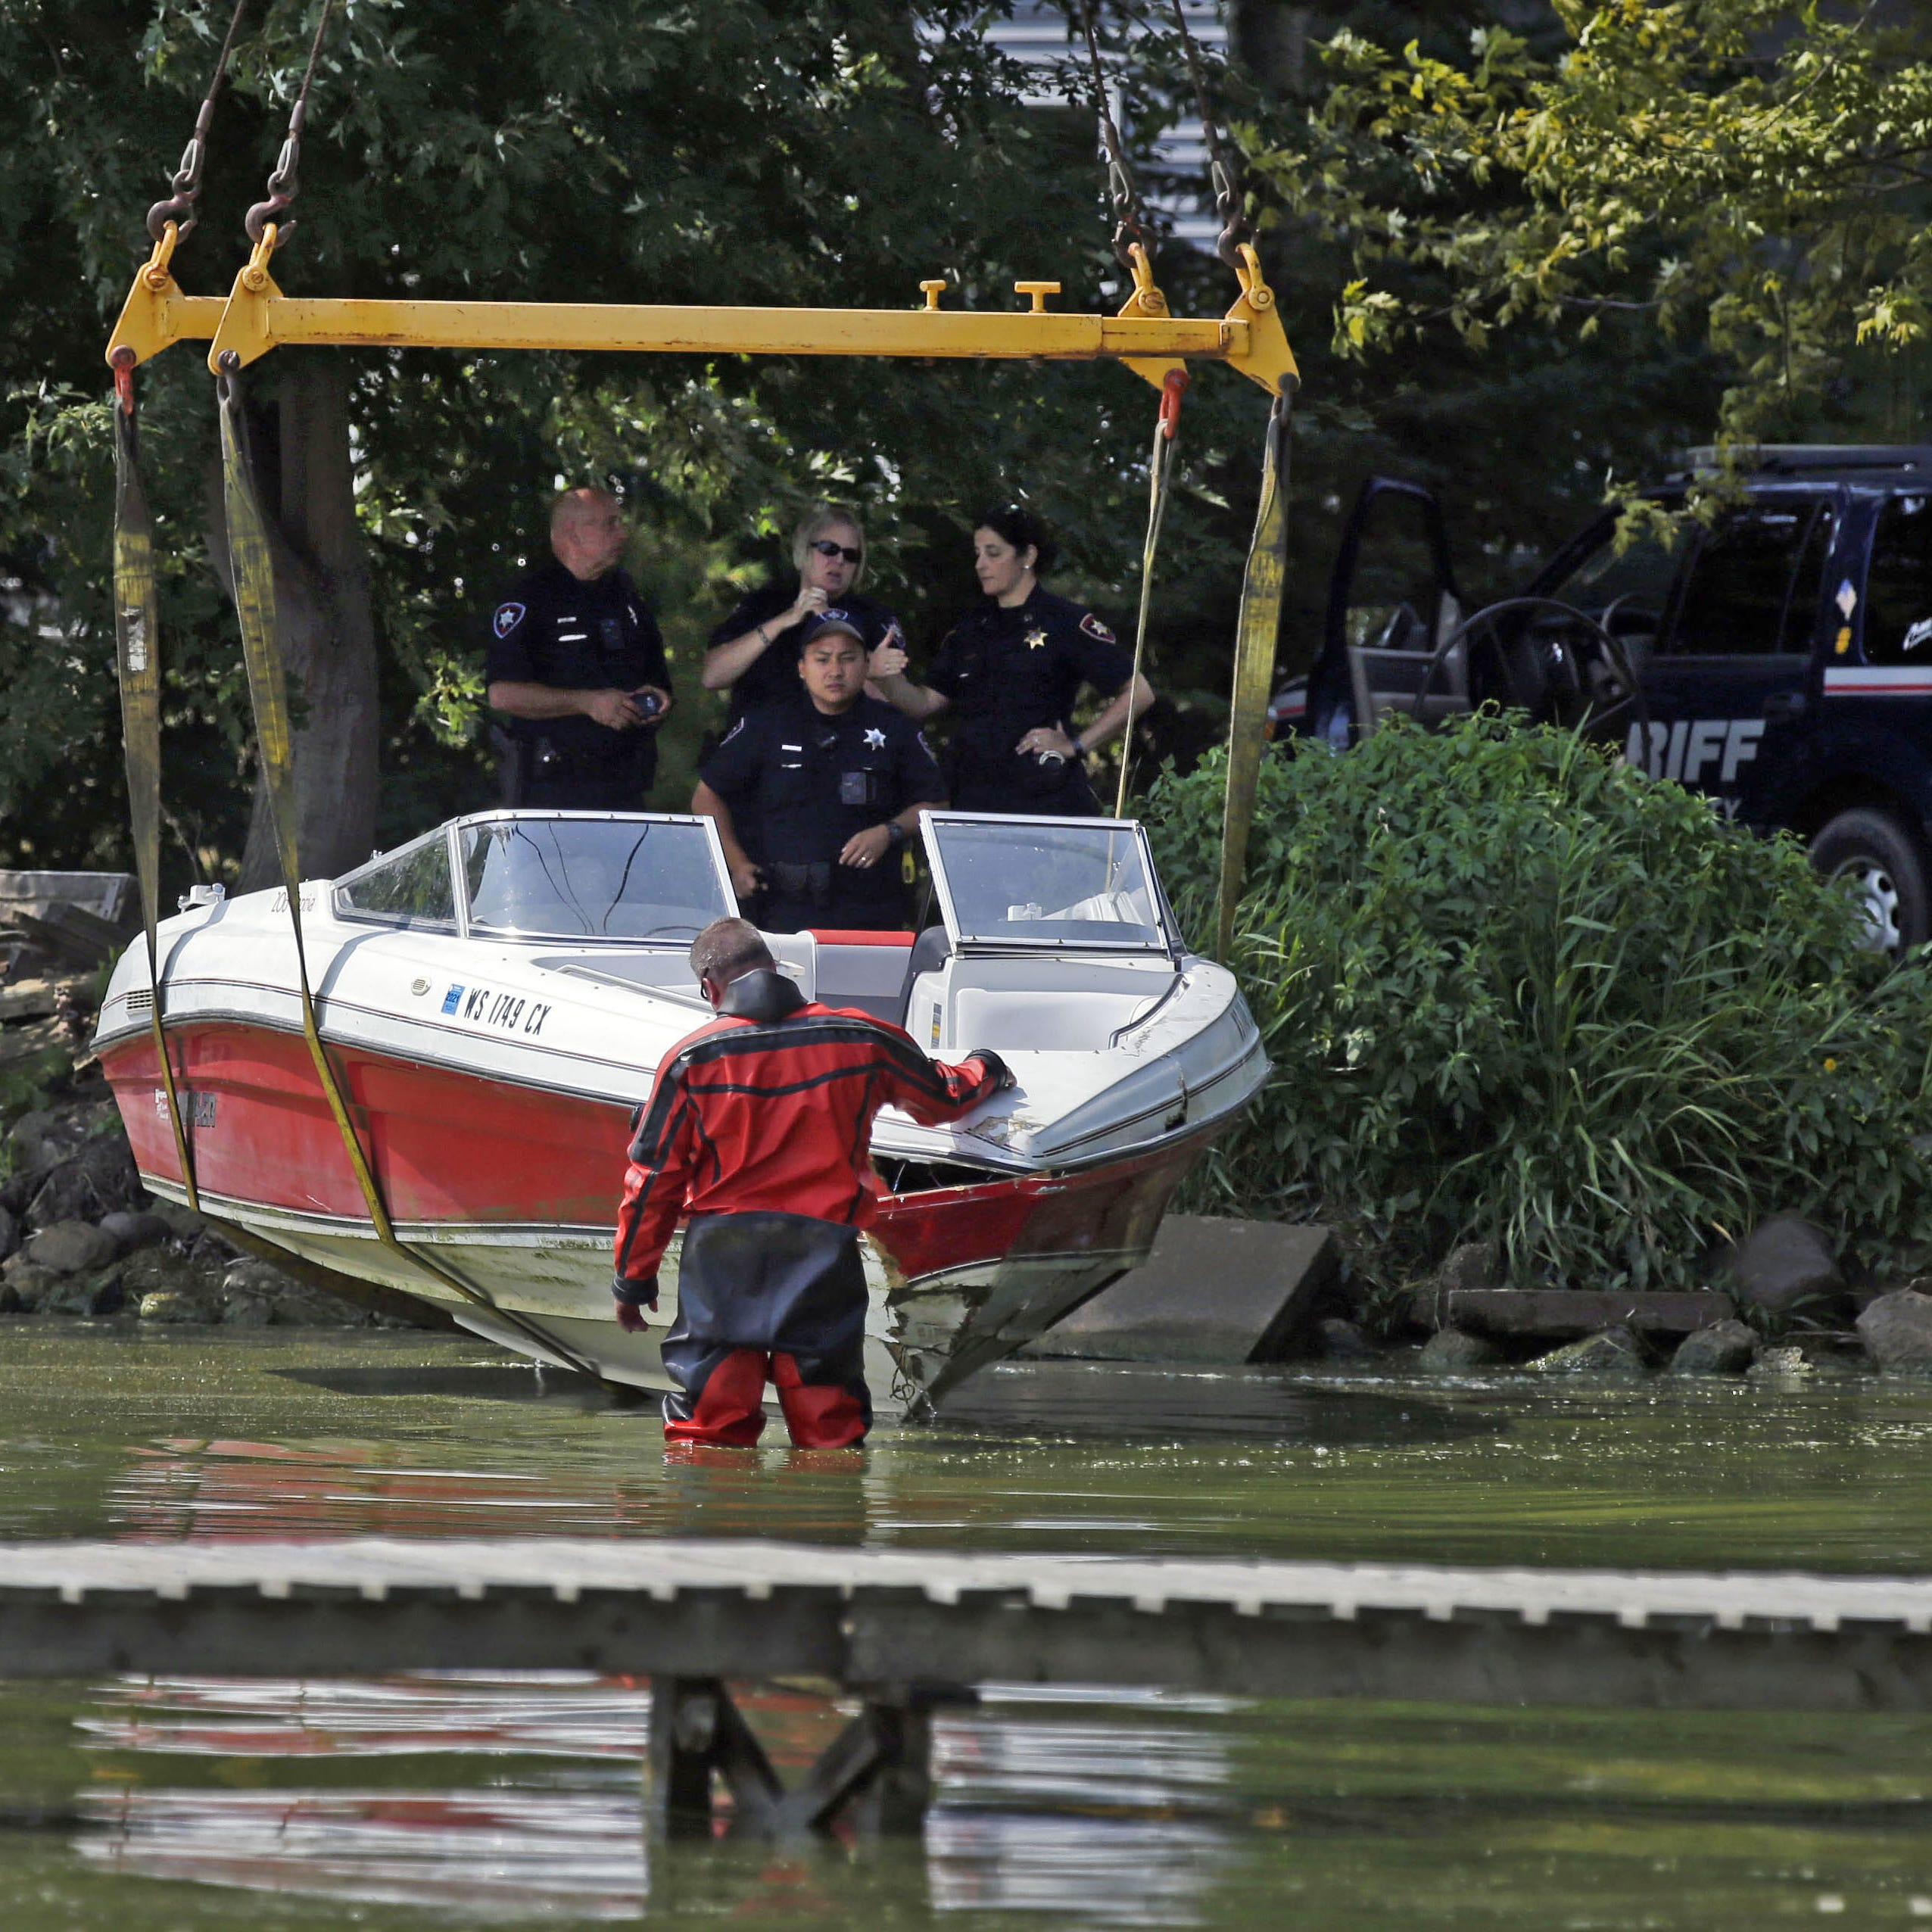 Neenah man faces vehicular homicide charges in connection with boat crash that killed two sisters